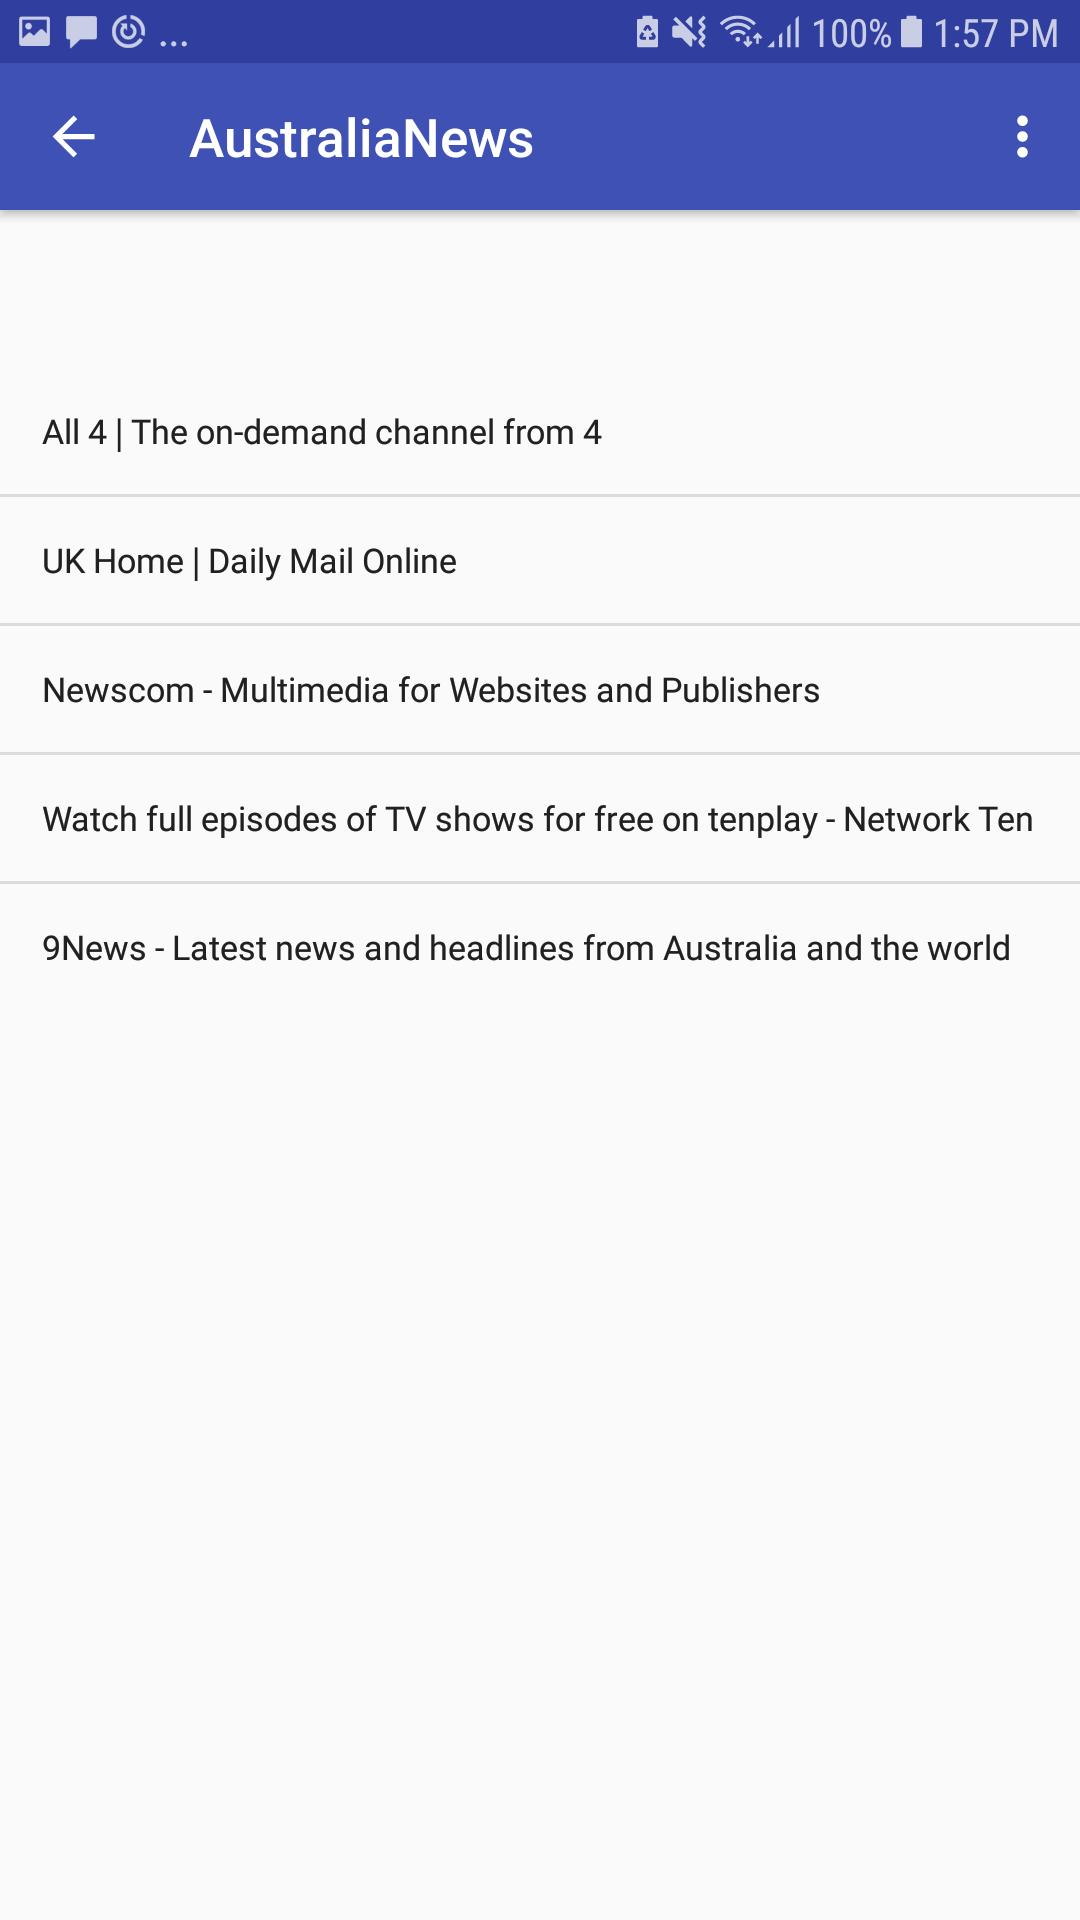 Australian News App | All Australia News papers for Android